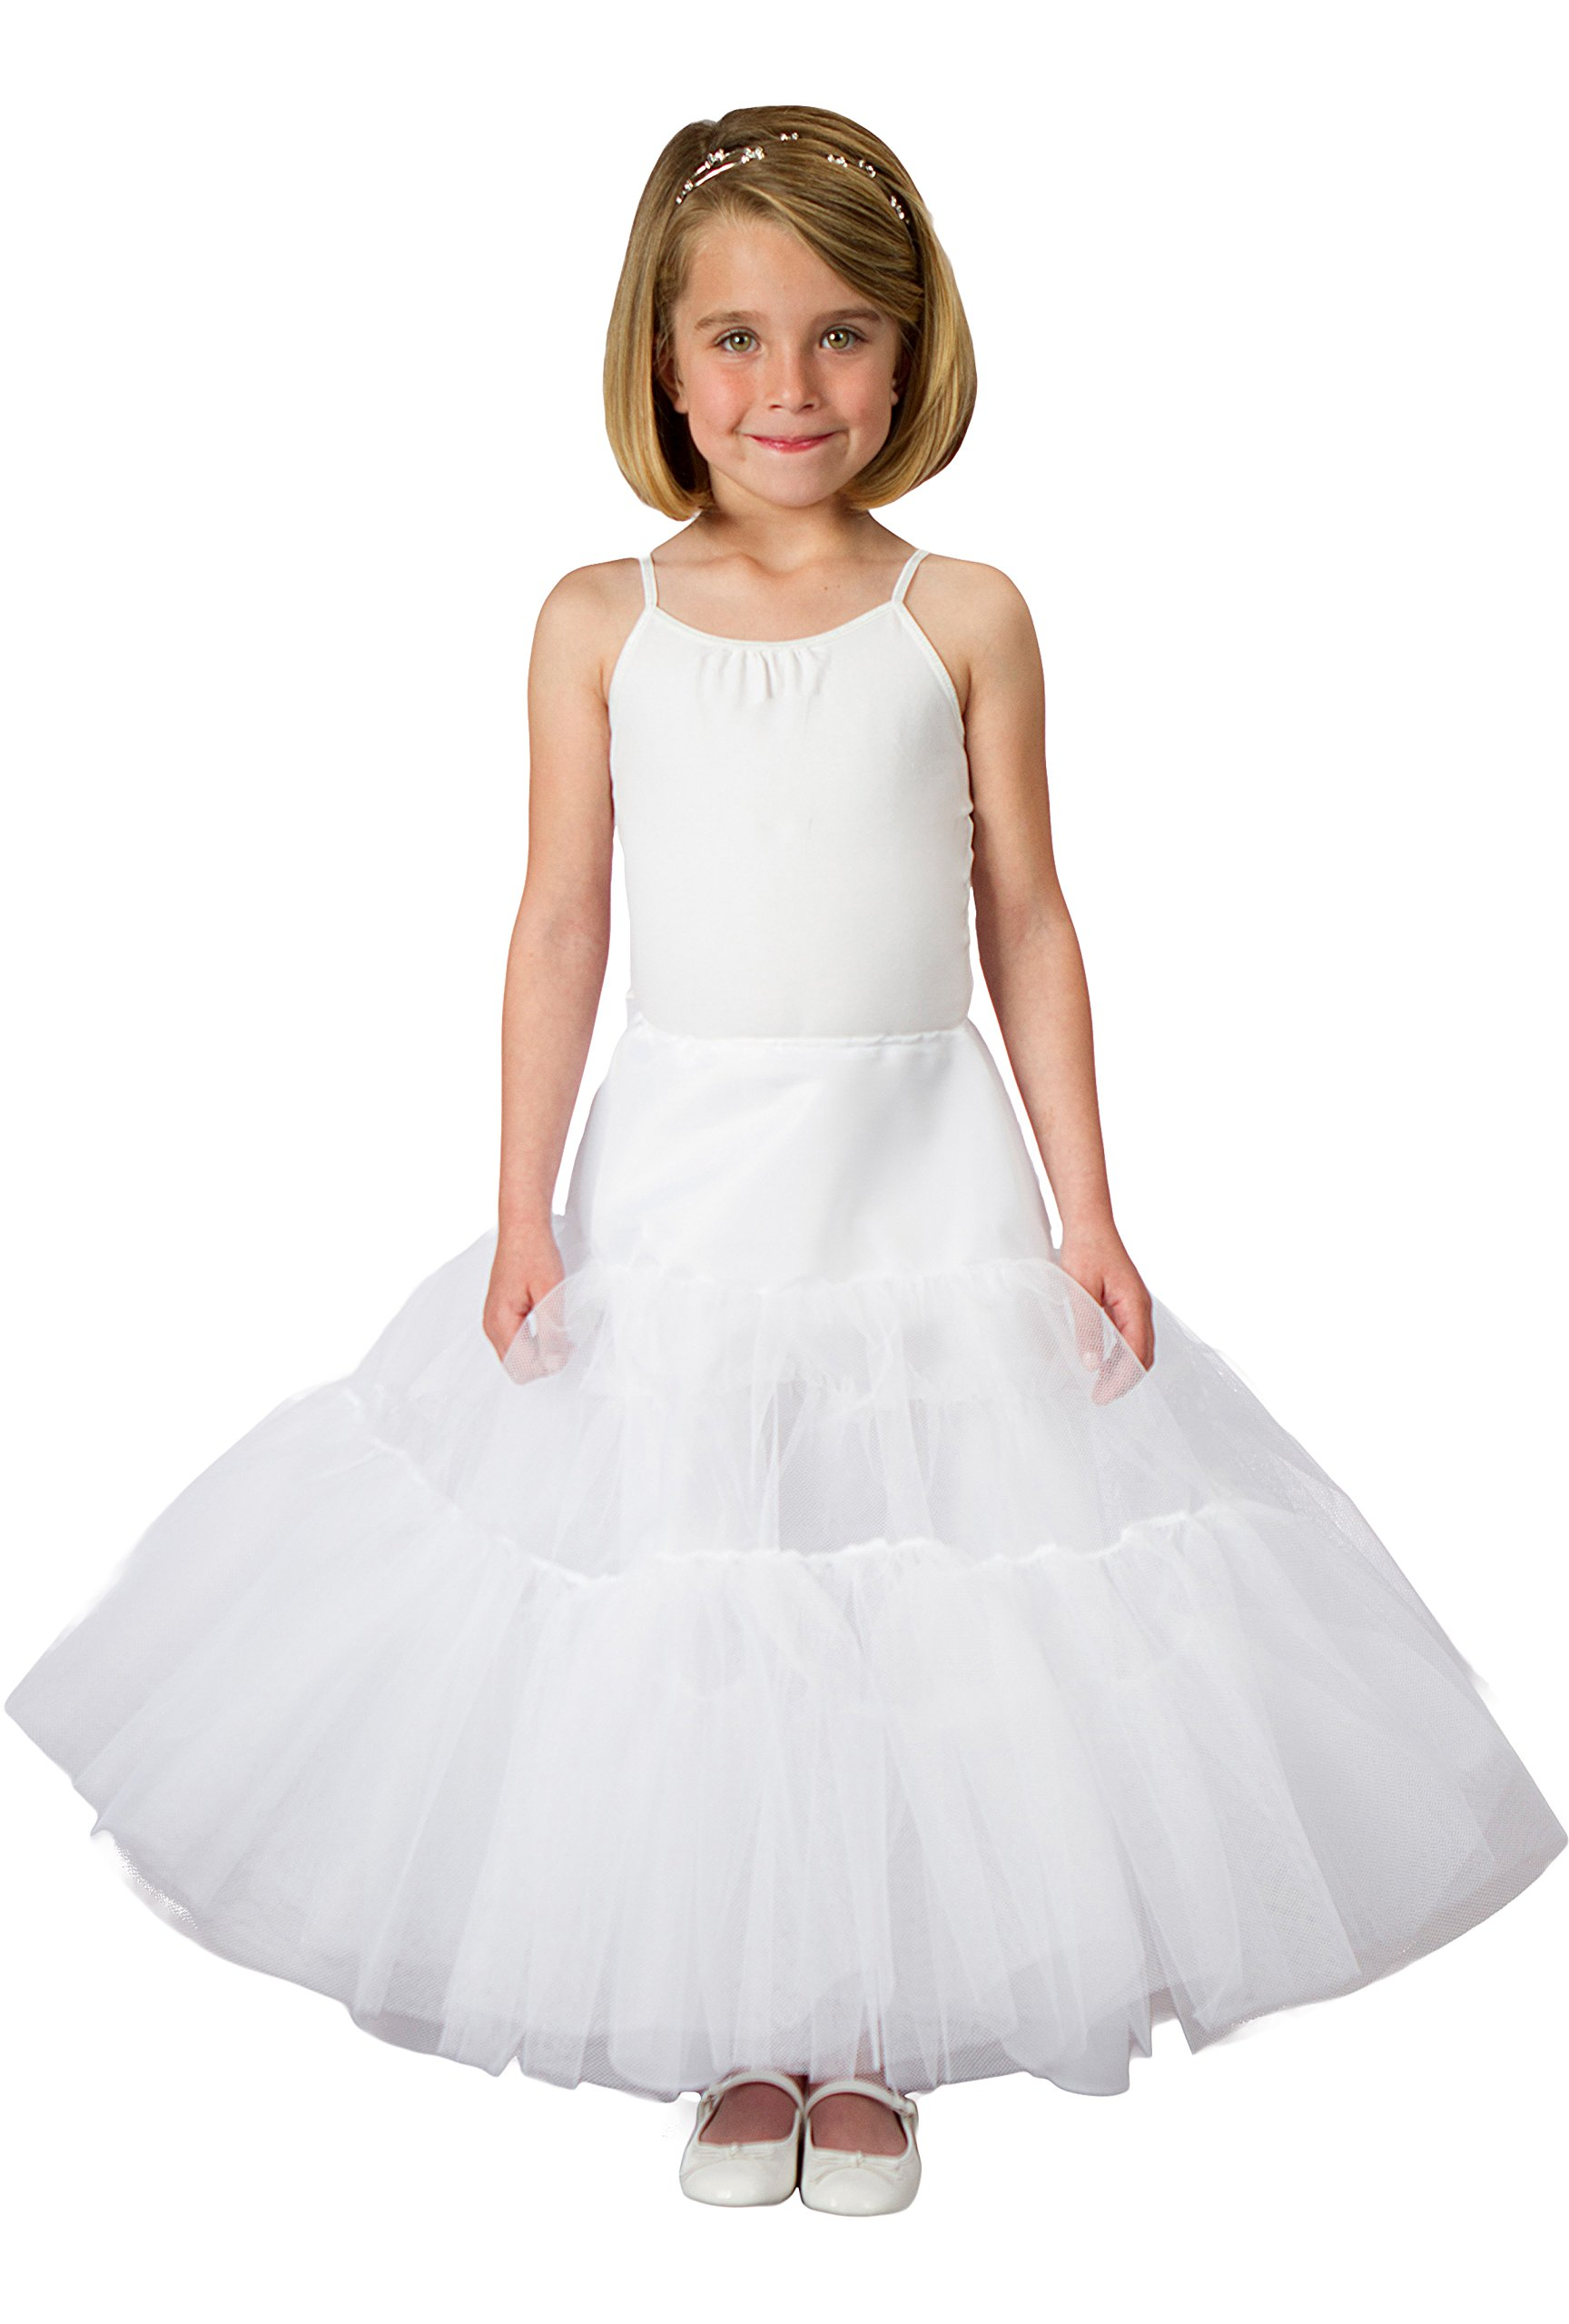 Undercover Bridal 7744 Girls Crinoline 18''-Yes-White